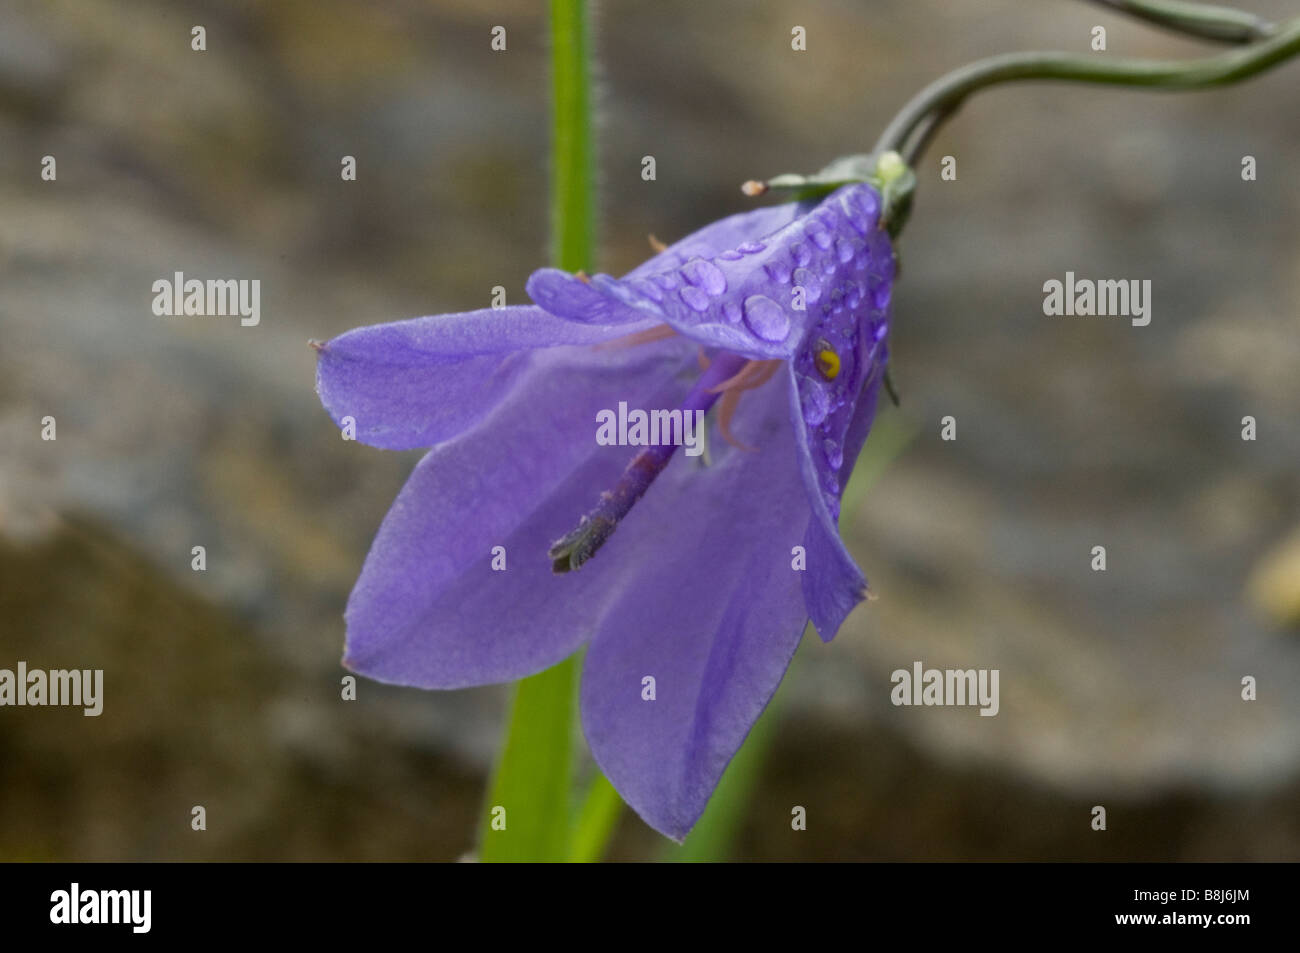 Harebell Flower Close up with raindrops on the petals - Stock Image